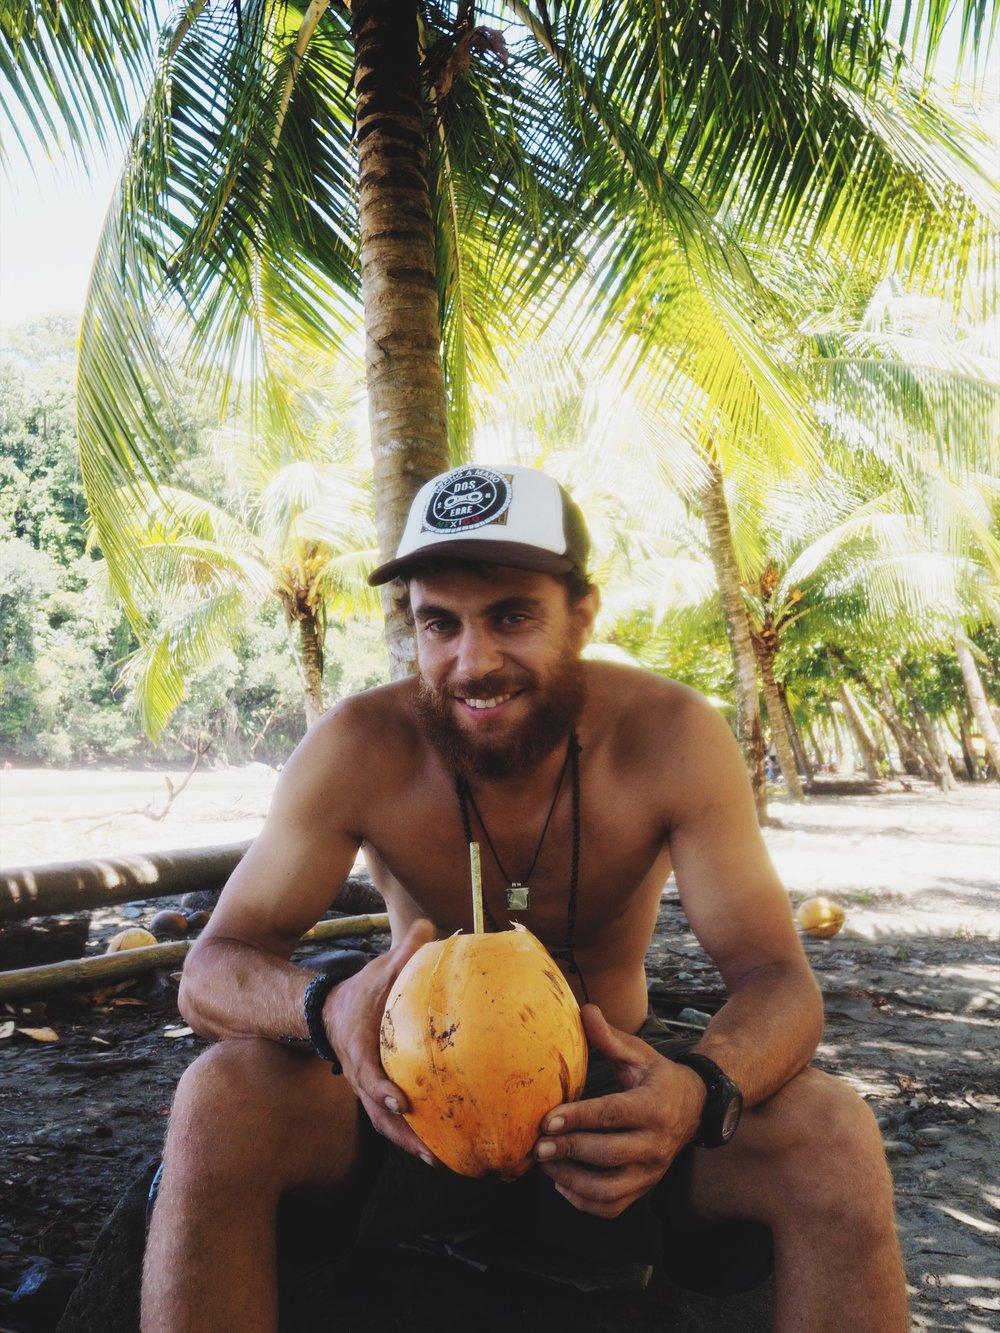 Enjoying coconut water straight from the source